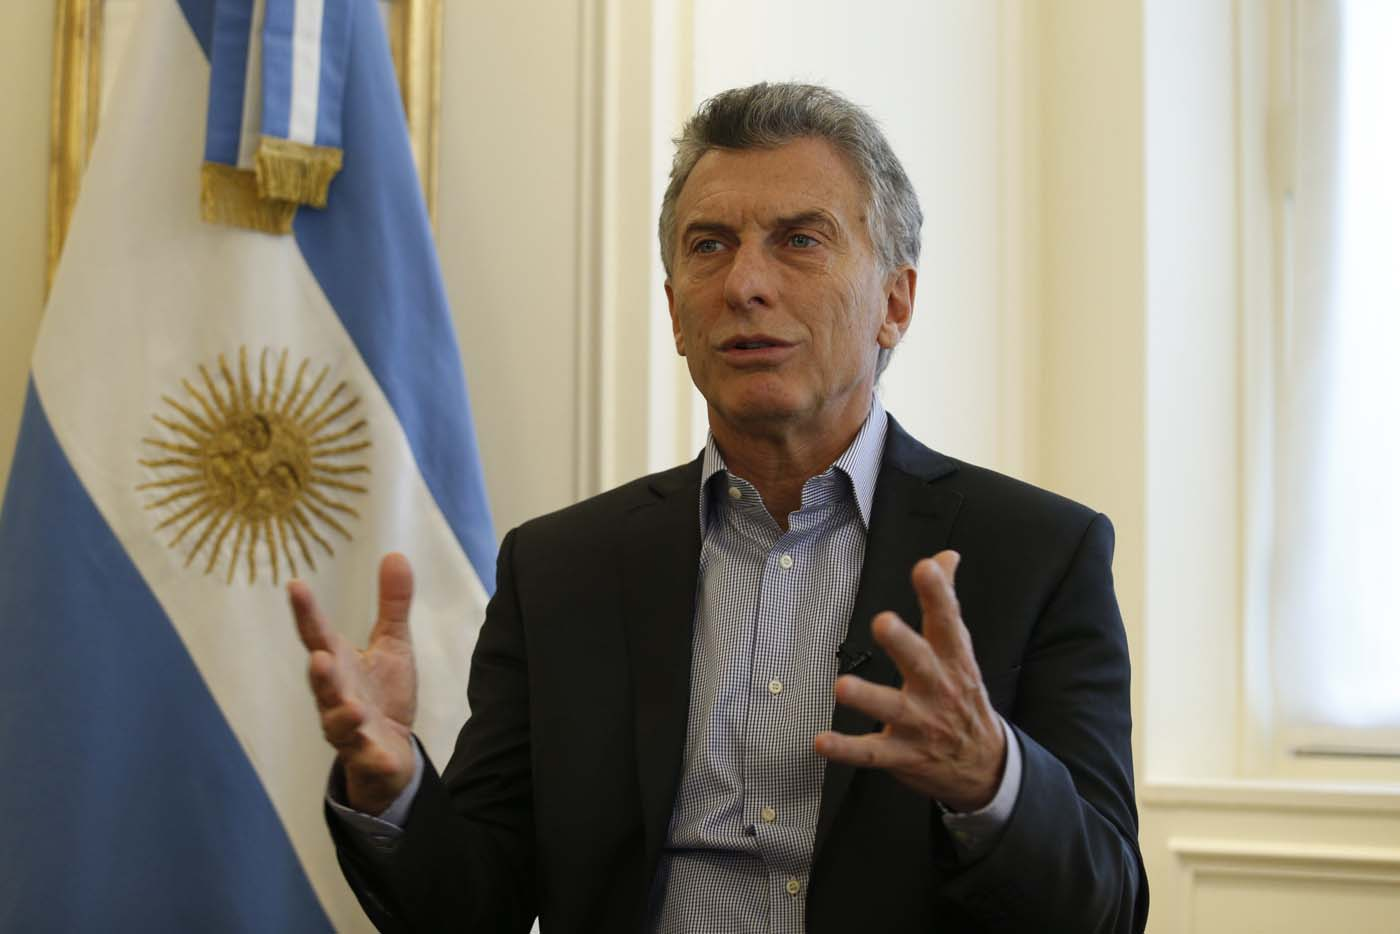 Argentina's president Mauricio Macri speaks during an interview on January 27, 2018 at the Hotel La Tremoille in Paris.  / AFP PHOTO / GEOFFROY VAN DER HASSELT